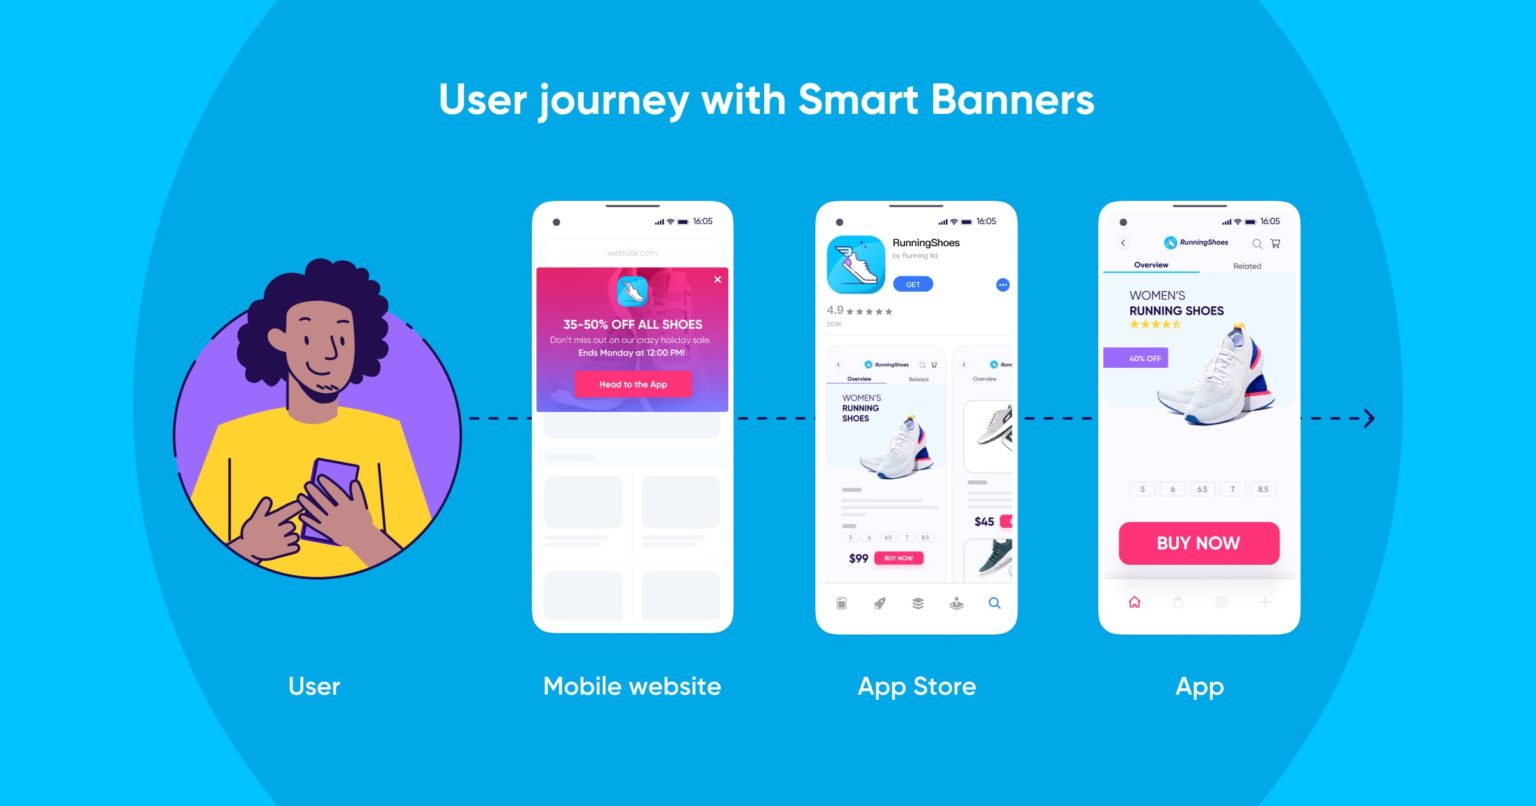 What are Smart Banners